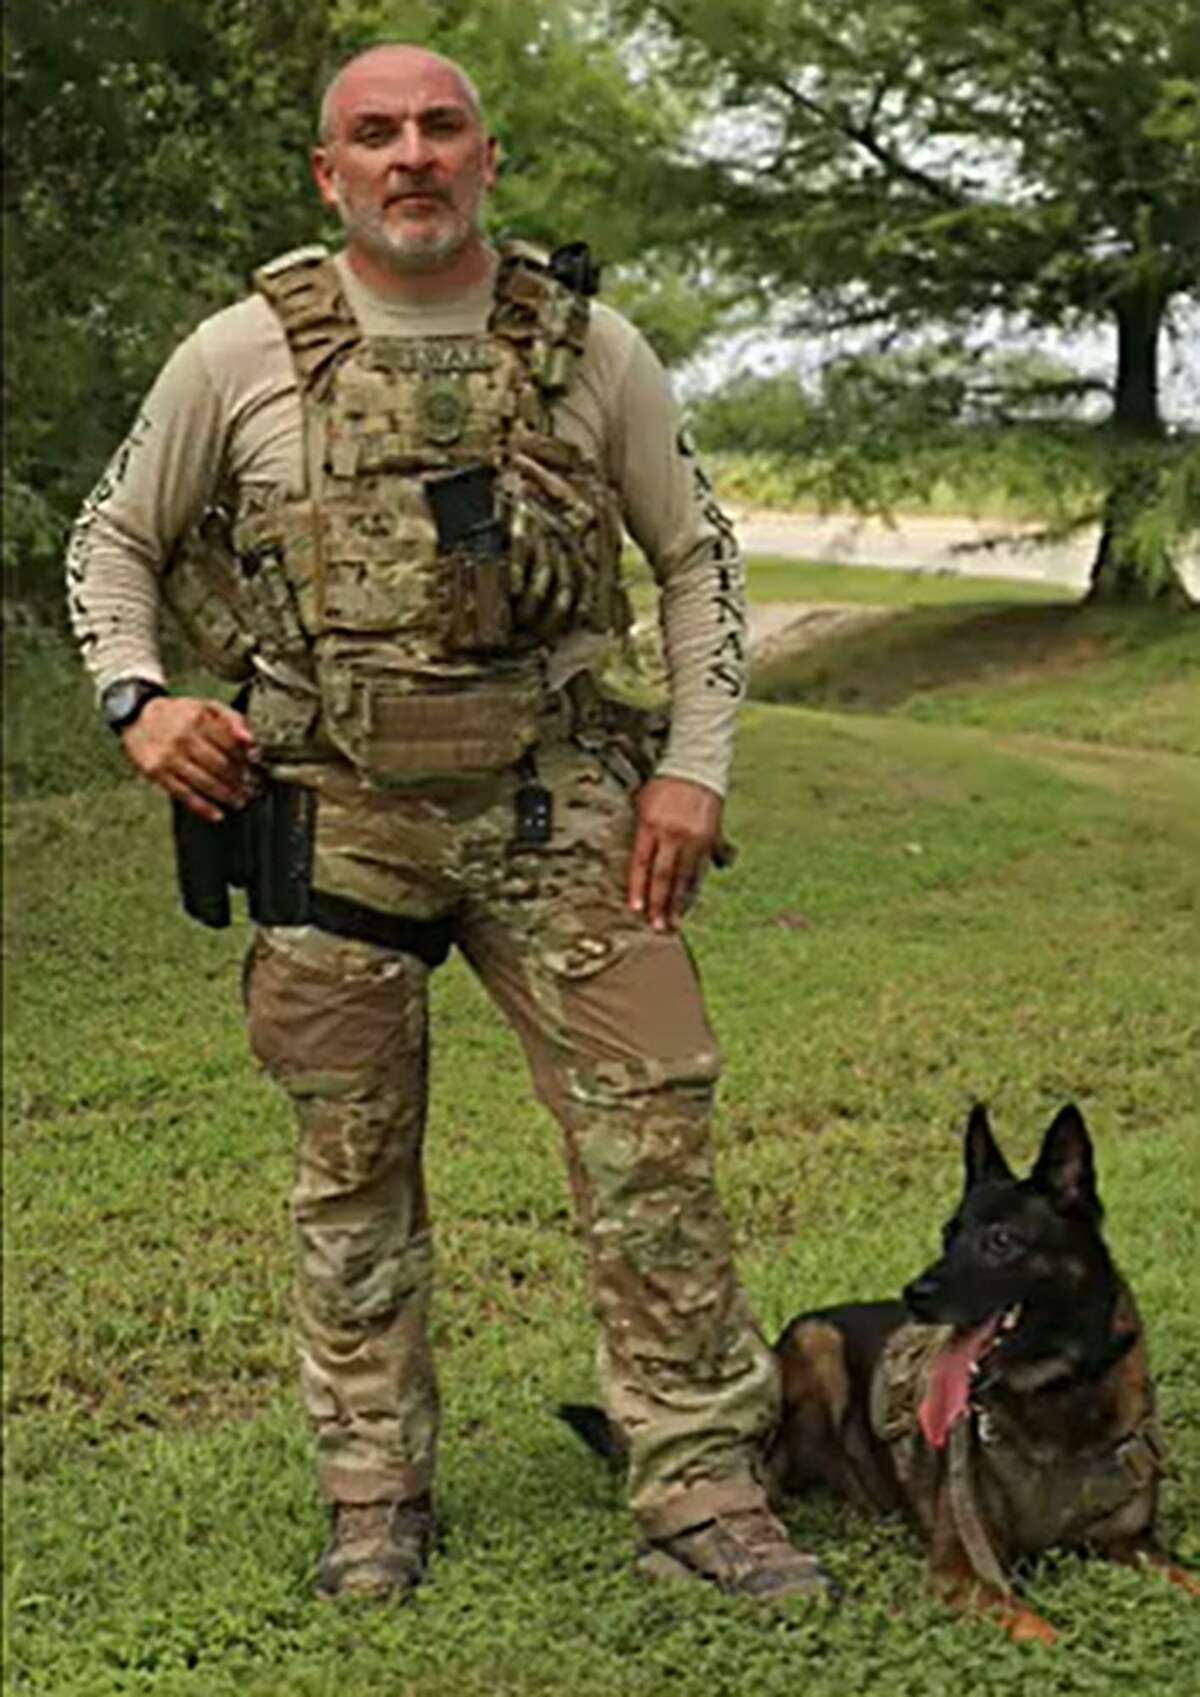 Deputy Floyd Cardenas, 41, who was assigned to the SWAT K-9 unit, was found unresponsive by his family Thursday morning, Sheriff Javier Salazar says.